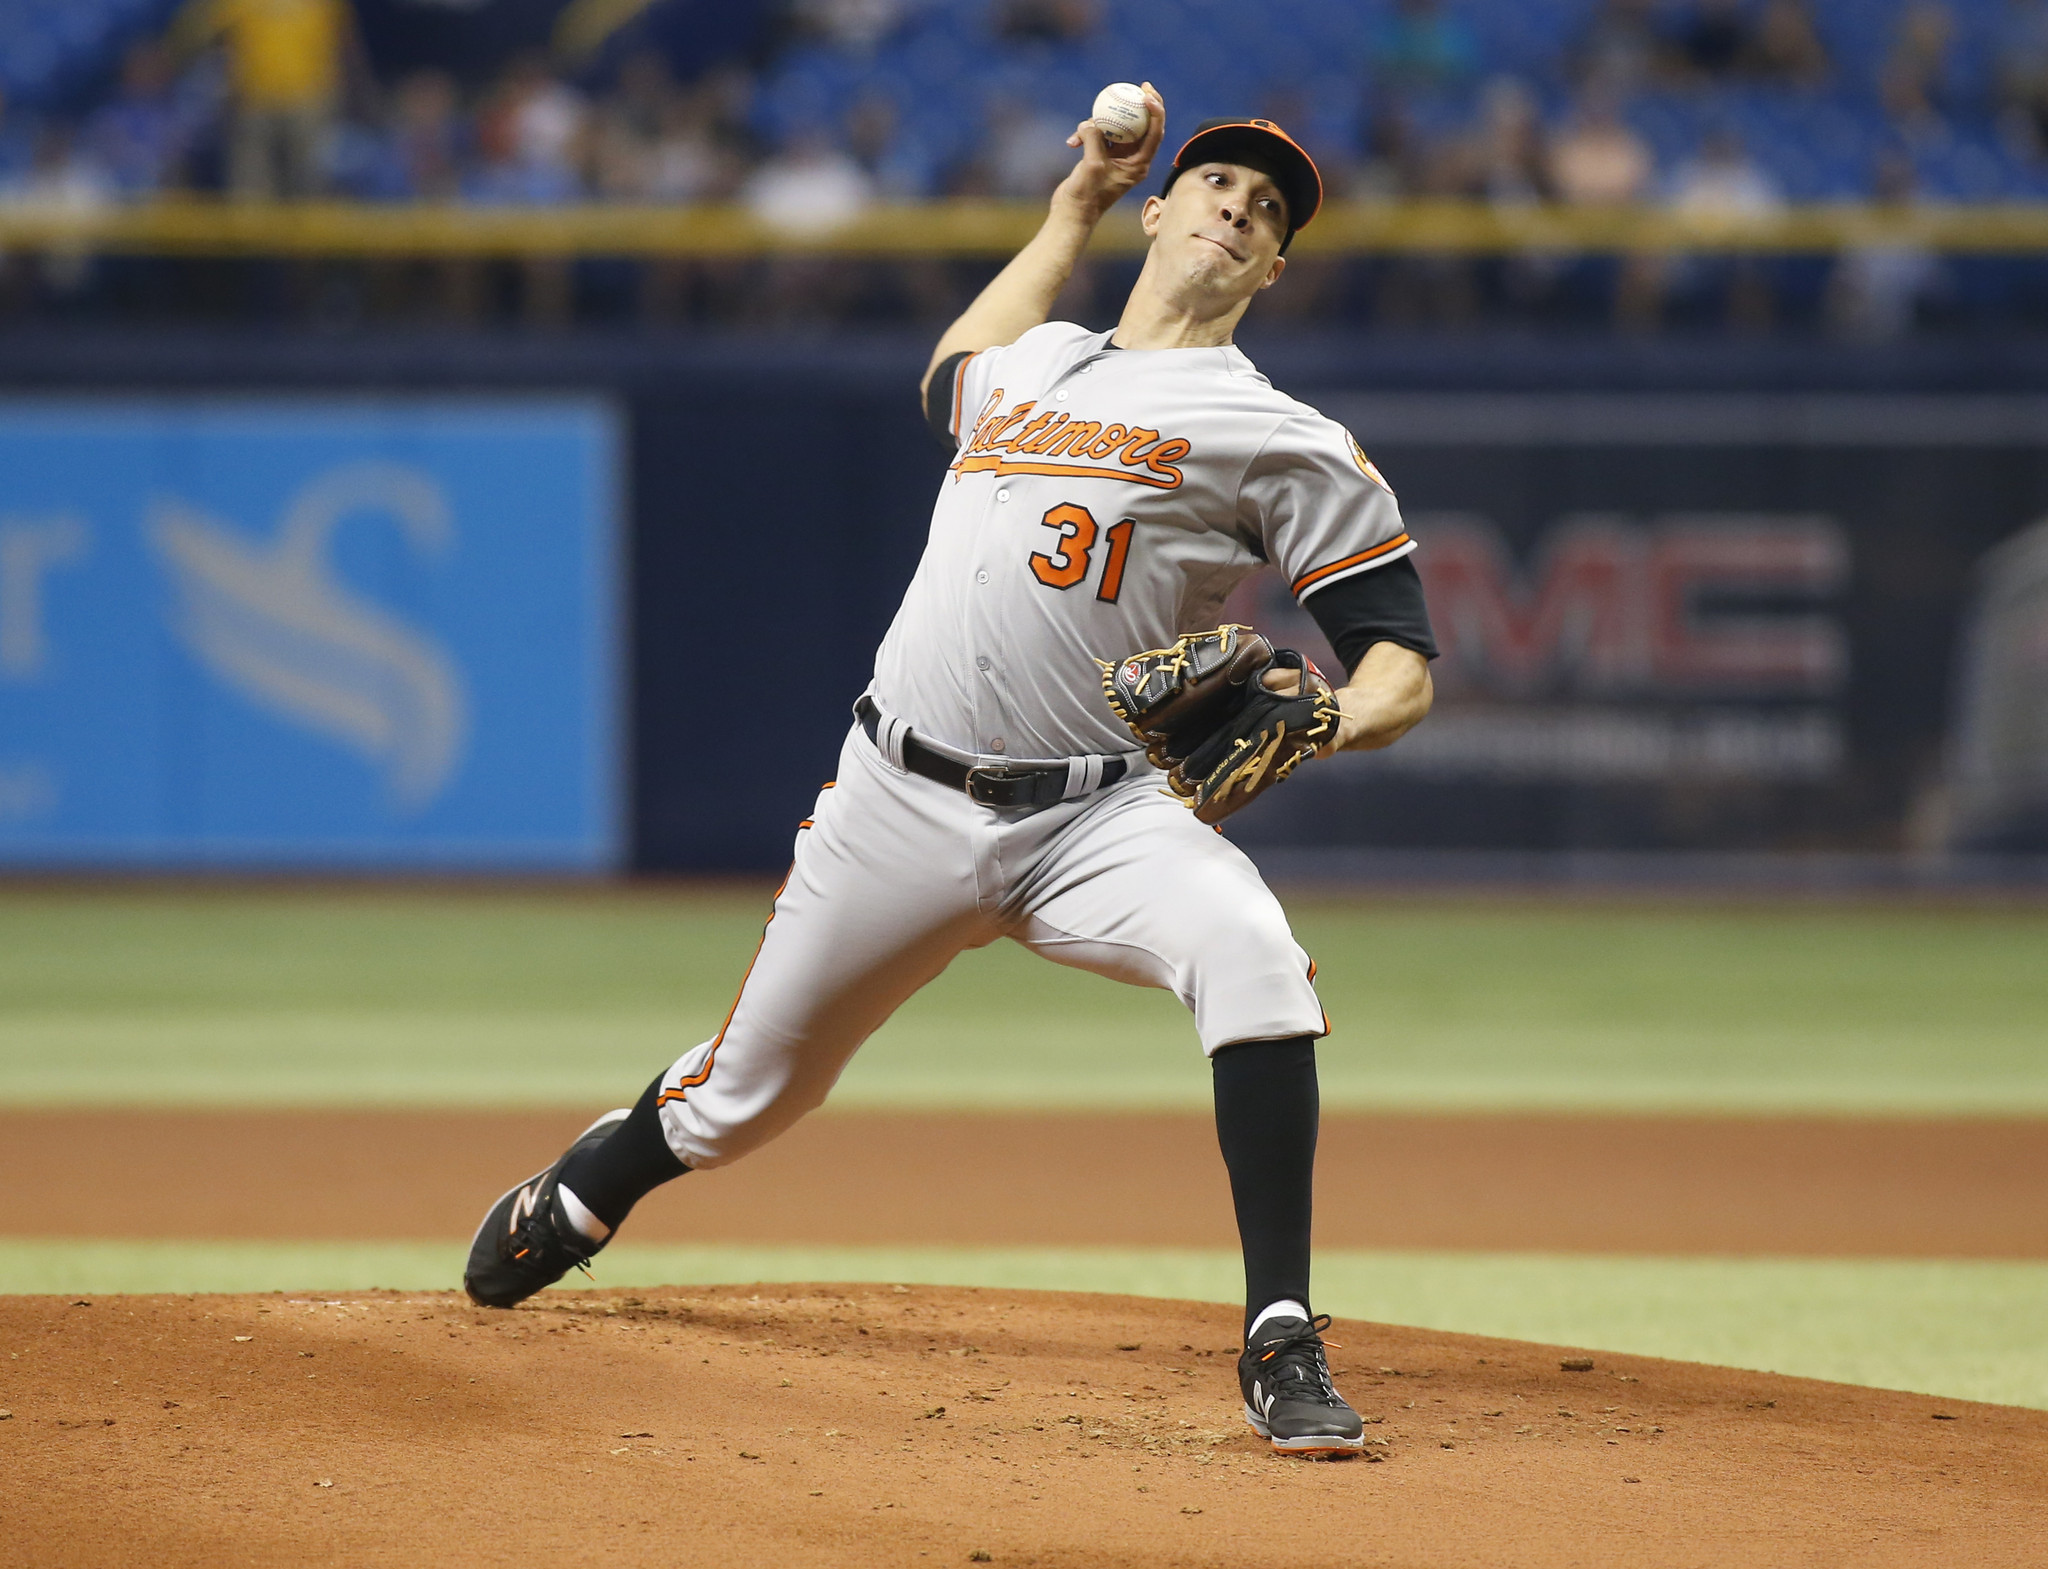 Bal-orioles-on-deck-what-to-watch-sunday-vs-white-sox-20160430